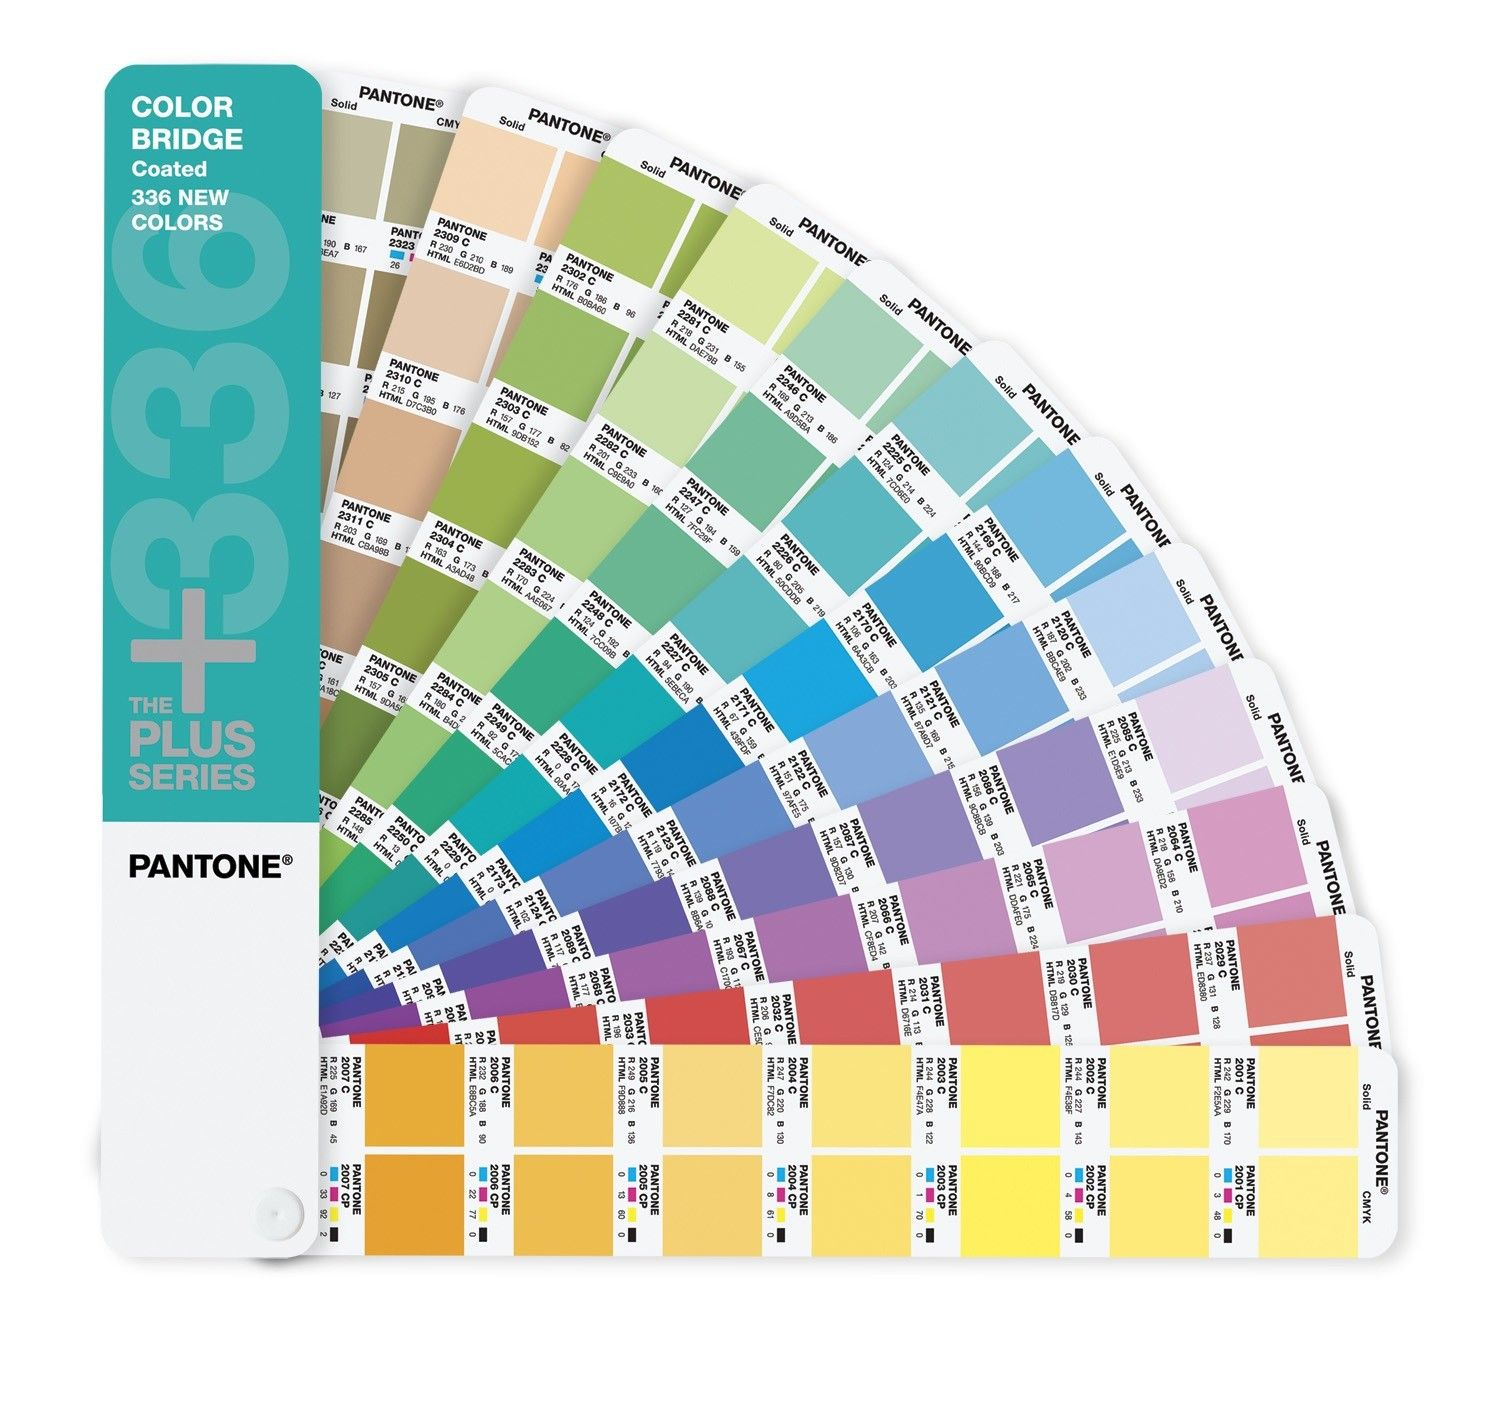 Pantone Plus Series Color Bridge Guide Coated Supplement Only 336 New Colors Pantone Products Browse By Pantone Color Bridge Pantone Photoshop Cs5